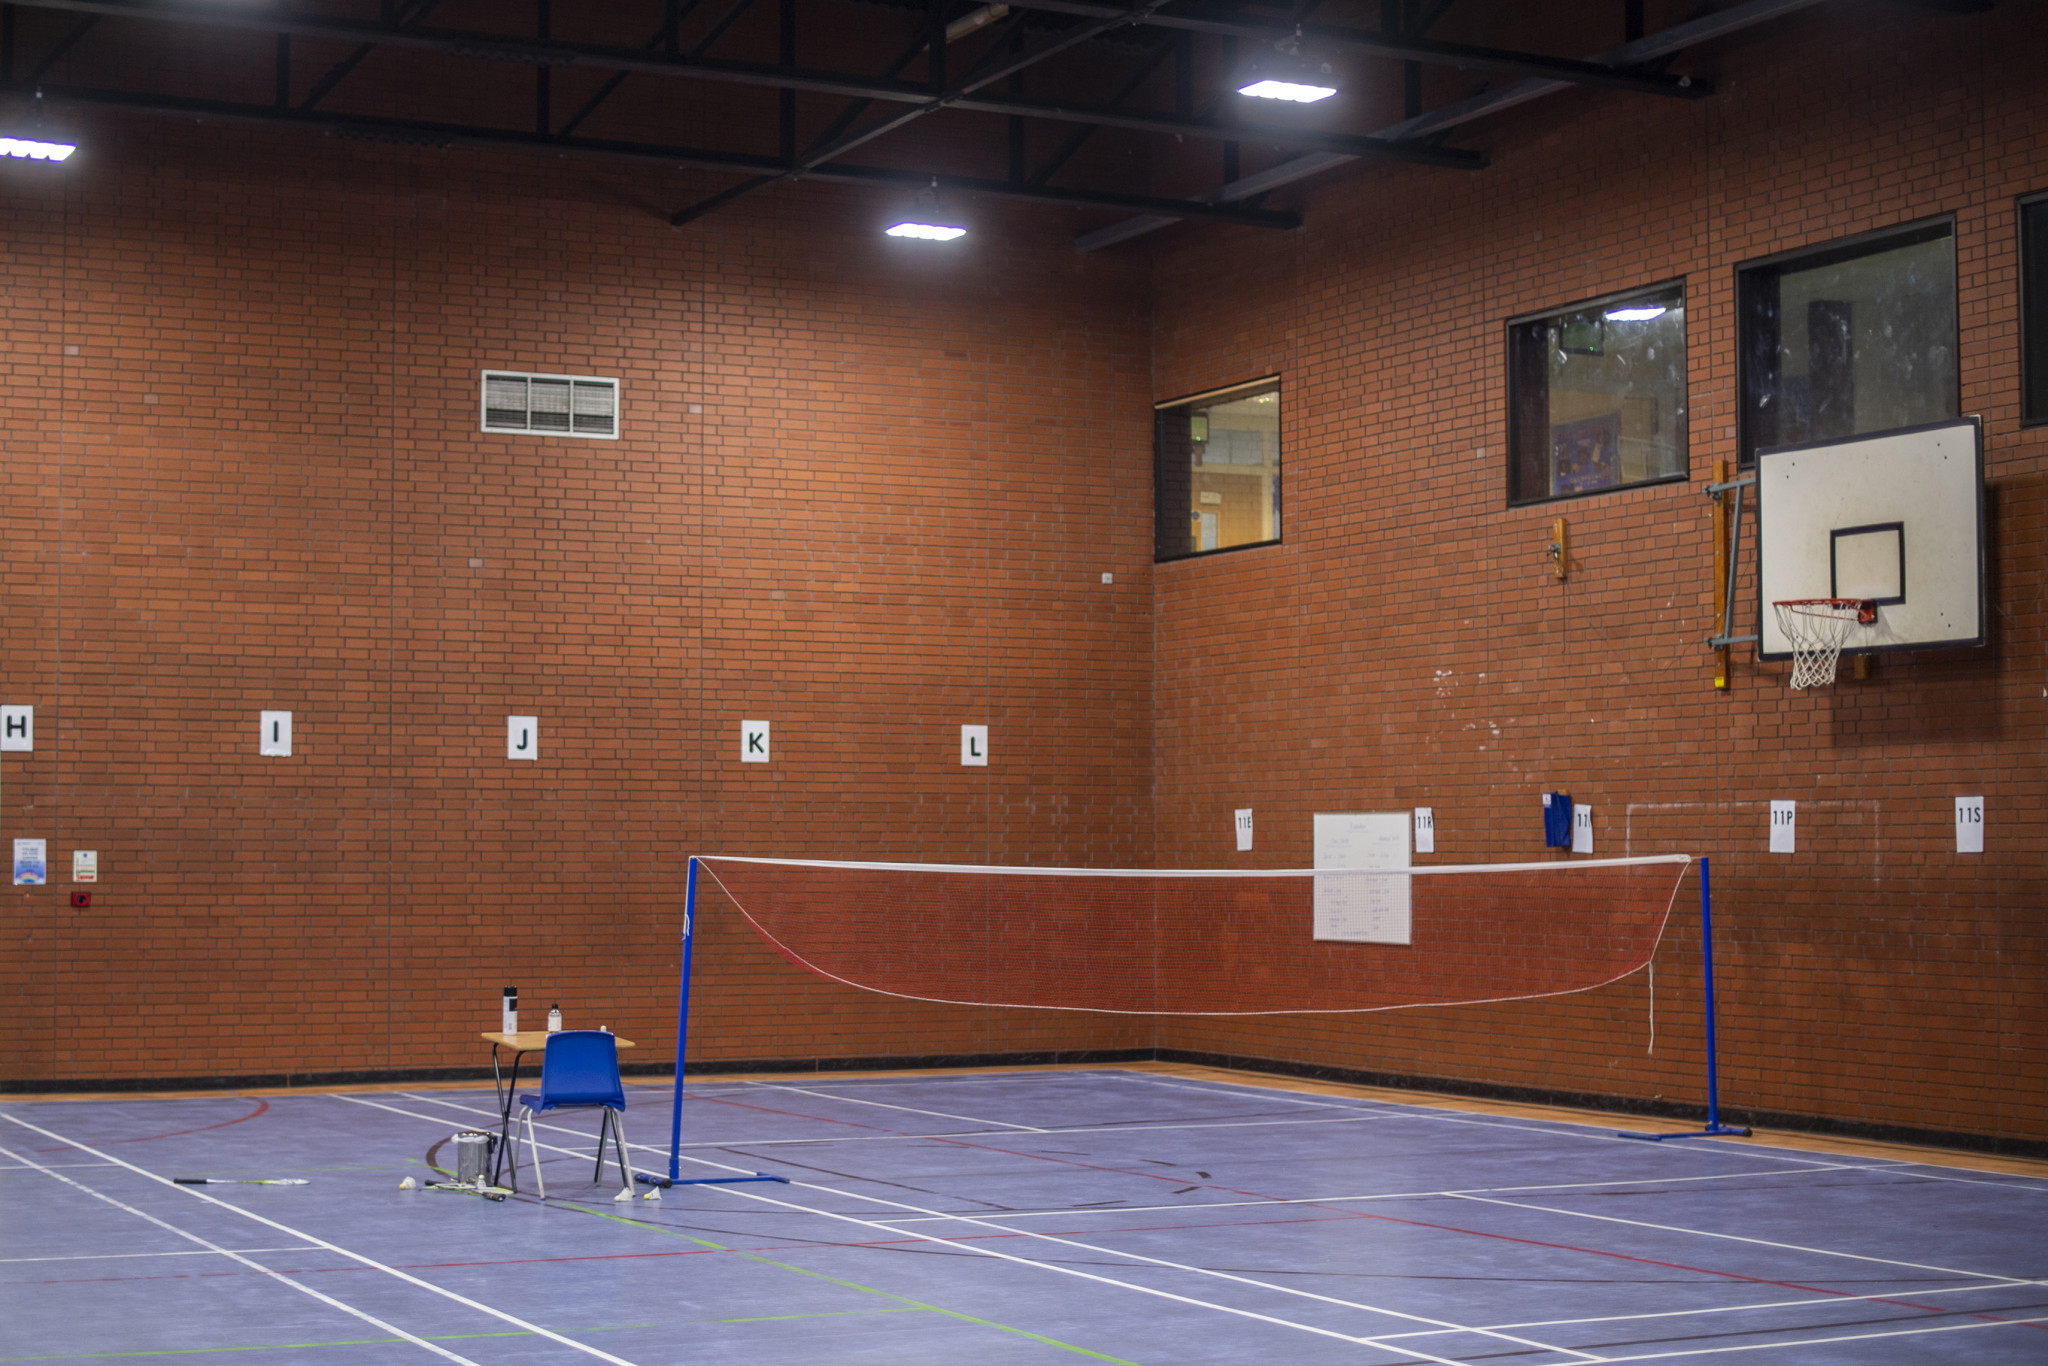 Badminton England lead calls for UK Government to protect sports halls disappearing because of COVID-19